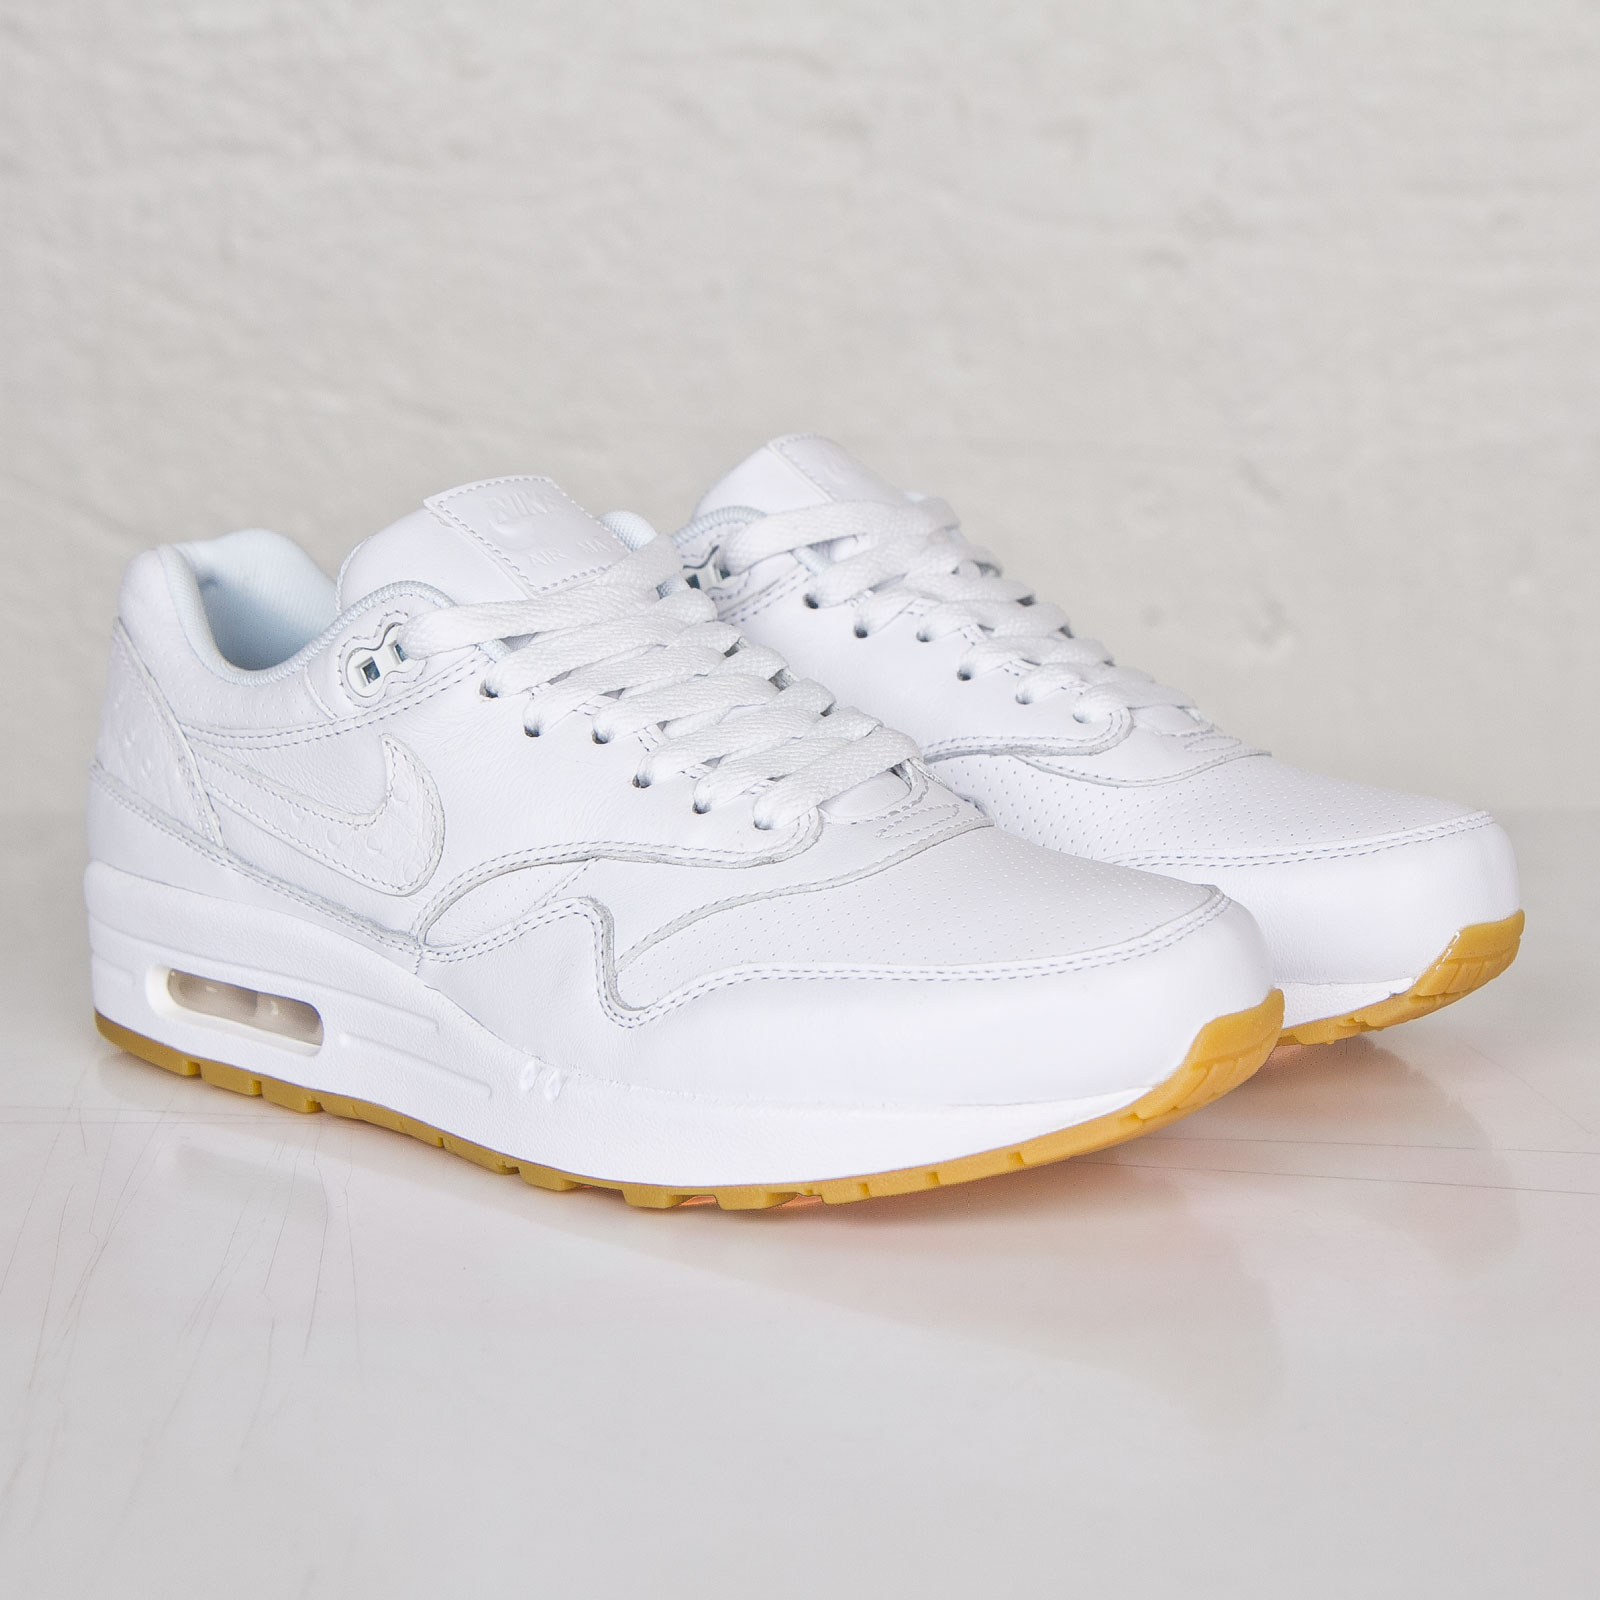 Nike Air Max 1 Leather PA - 705007-111